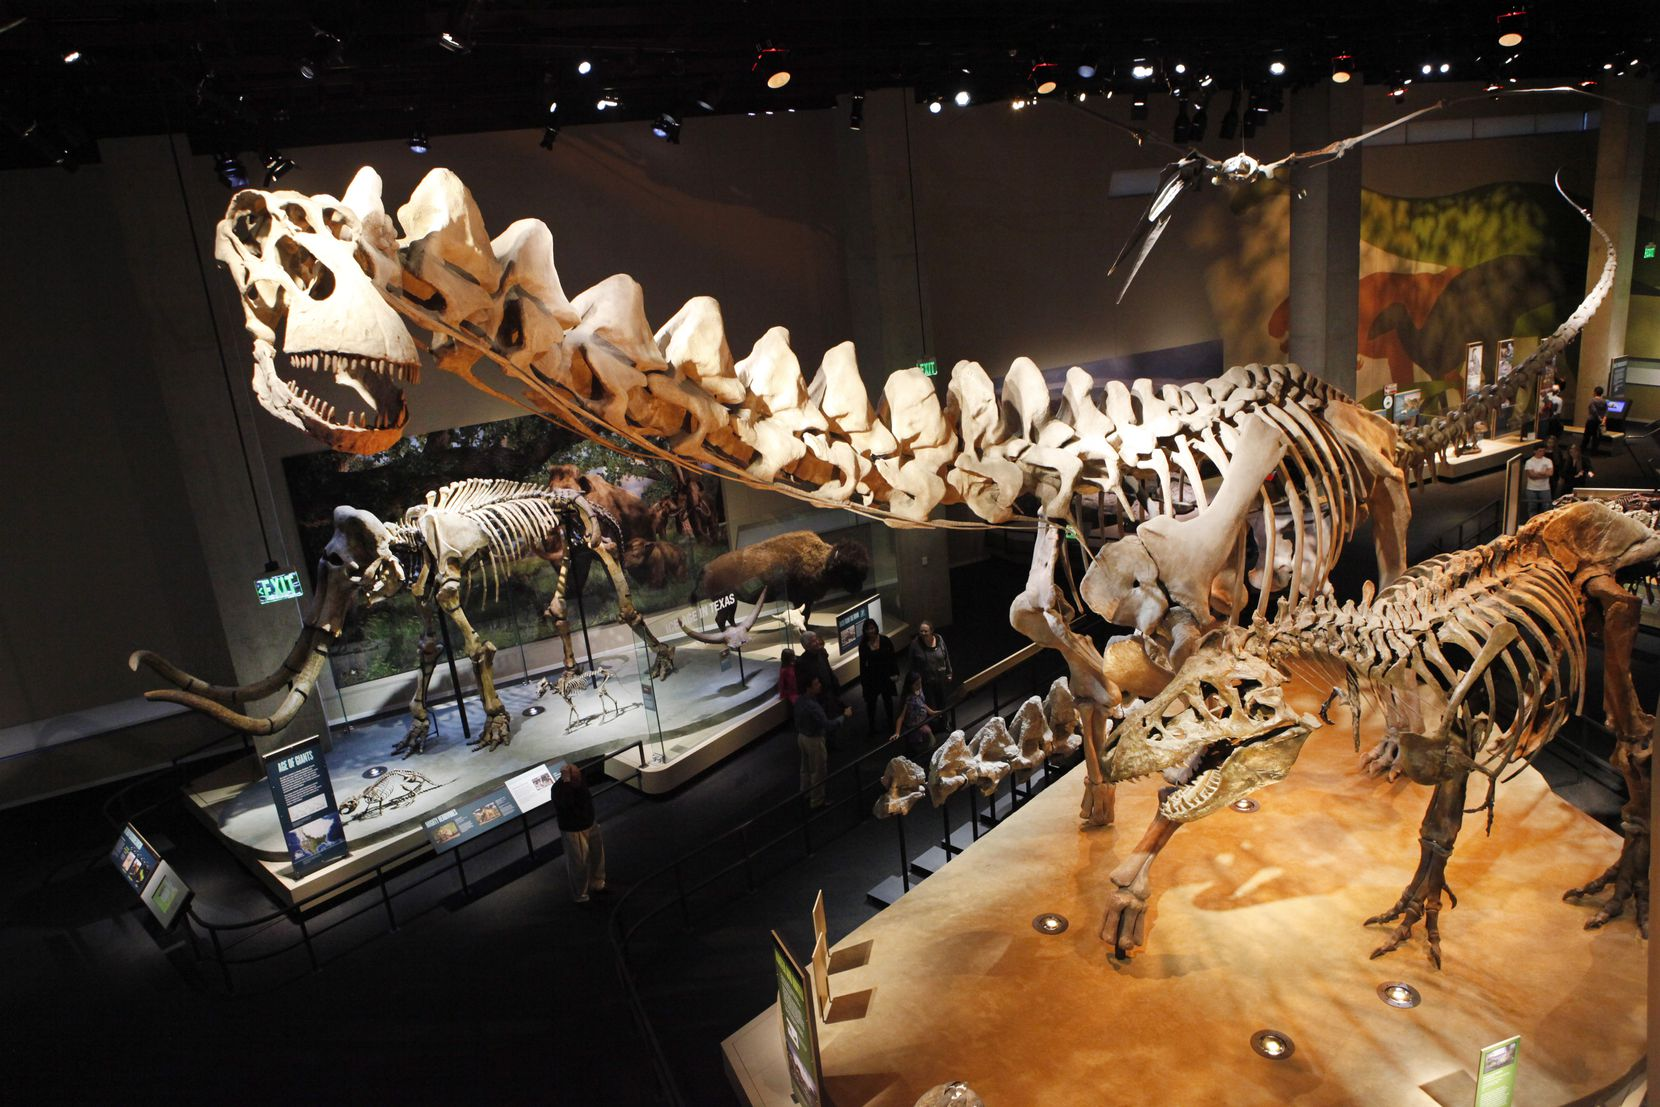 The Alamosaurus skeleton towers over other fossils in the Perot Museum of Nature and Science.